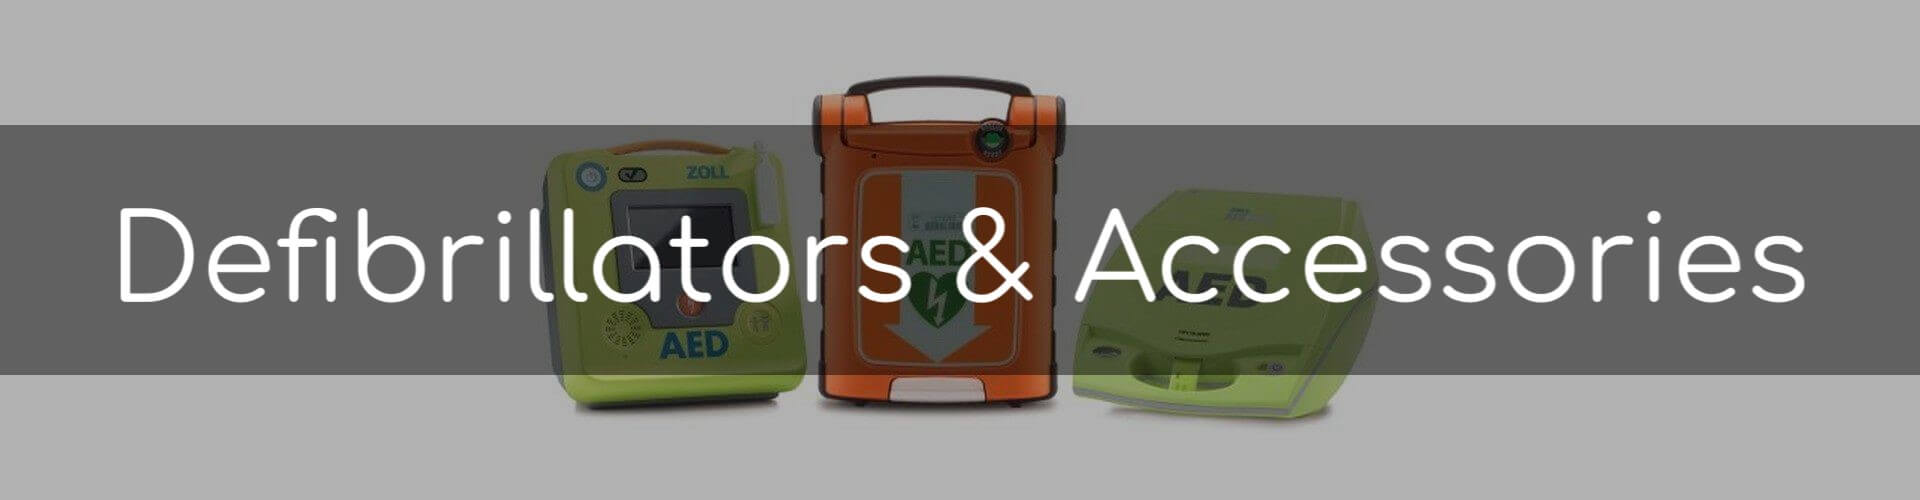 Images of Zoll and Cardiac Science brand defibrillators.